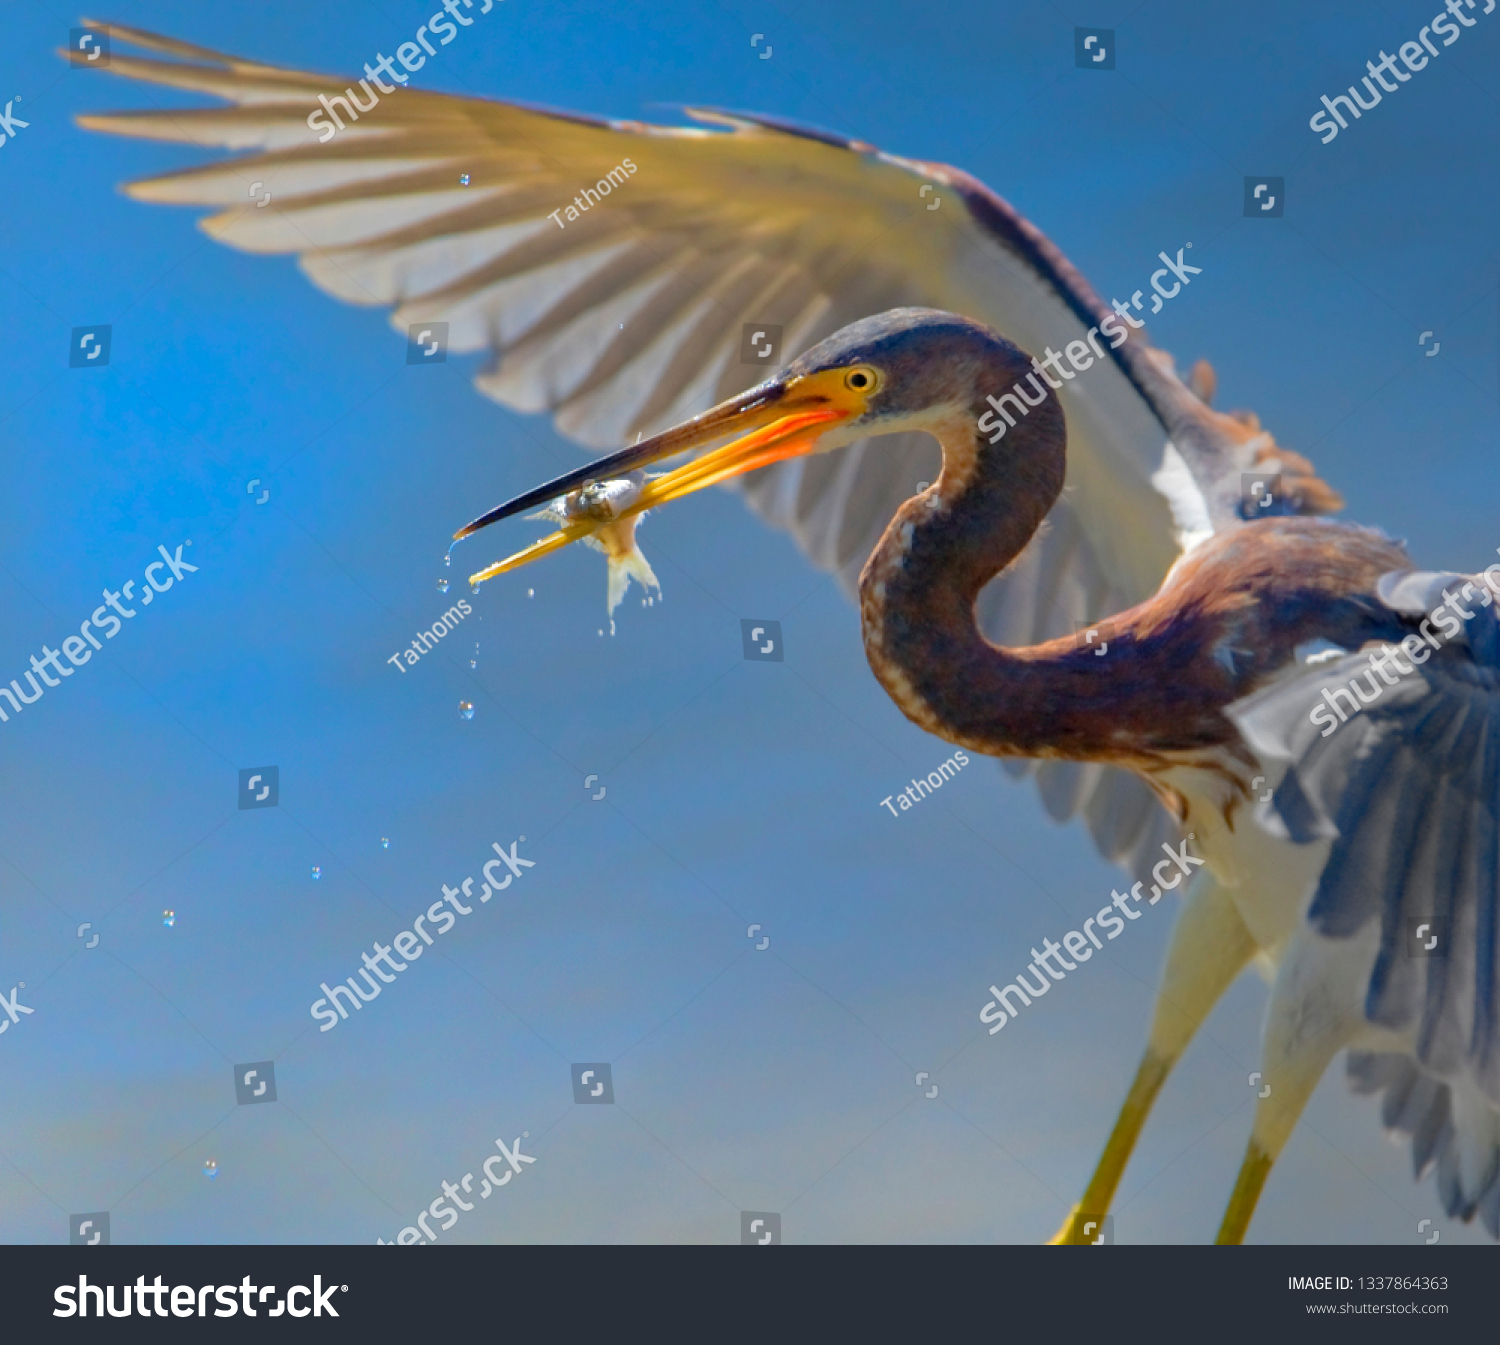 Tri-colored heron with catch, close up.Focus on catch and water drops. Latin name - Egretta tricolor.